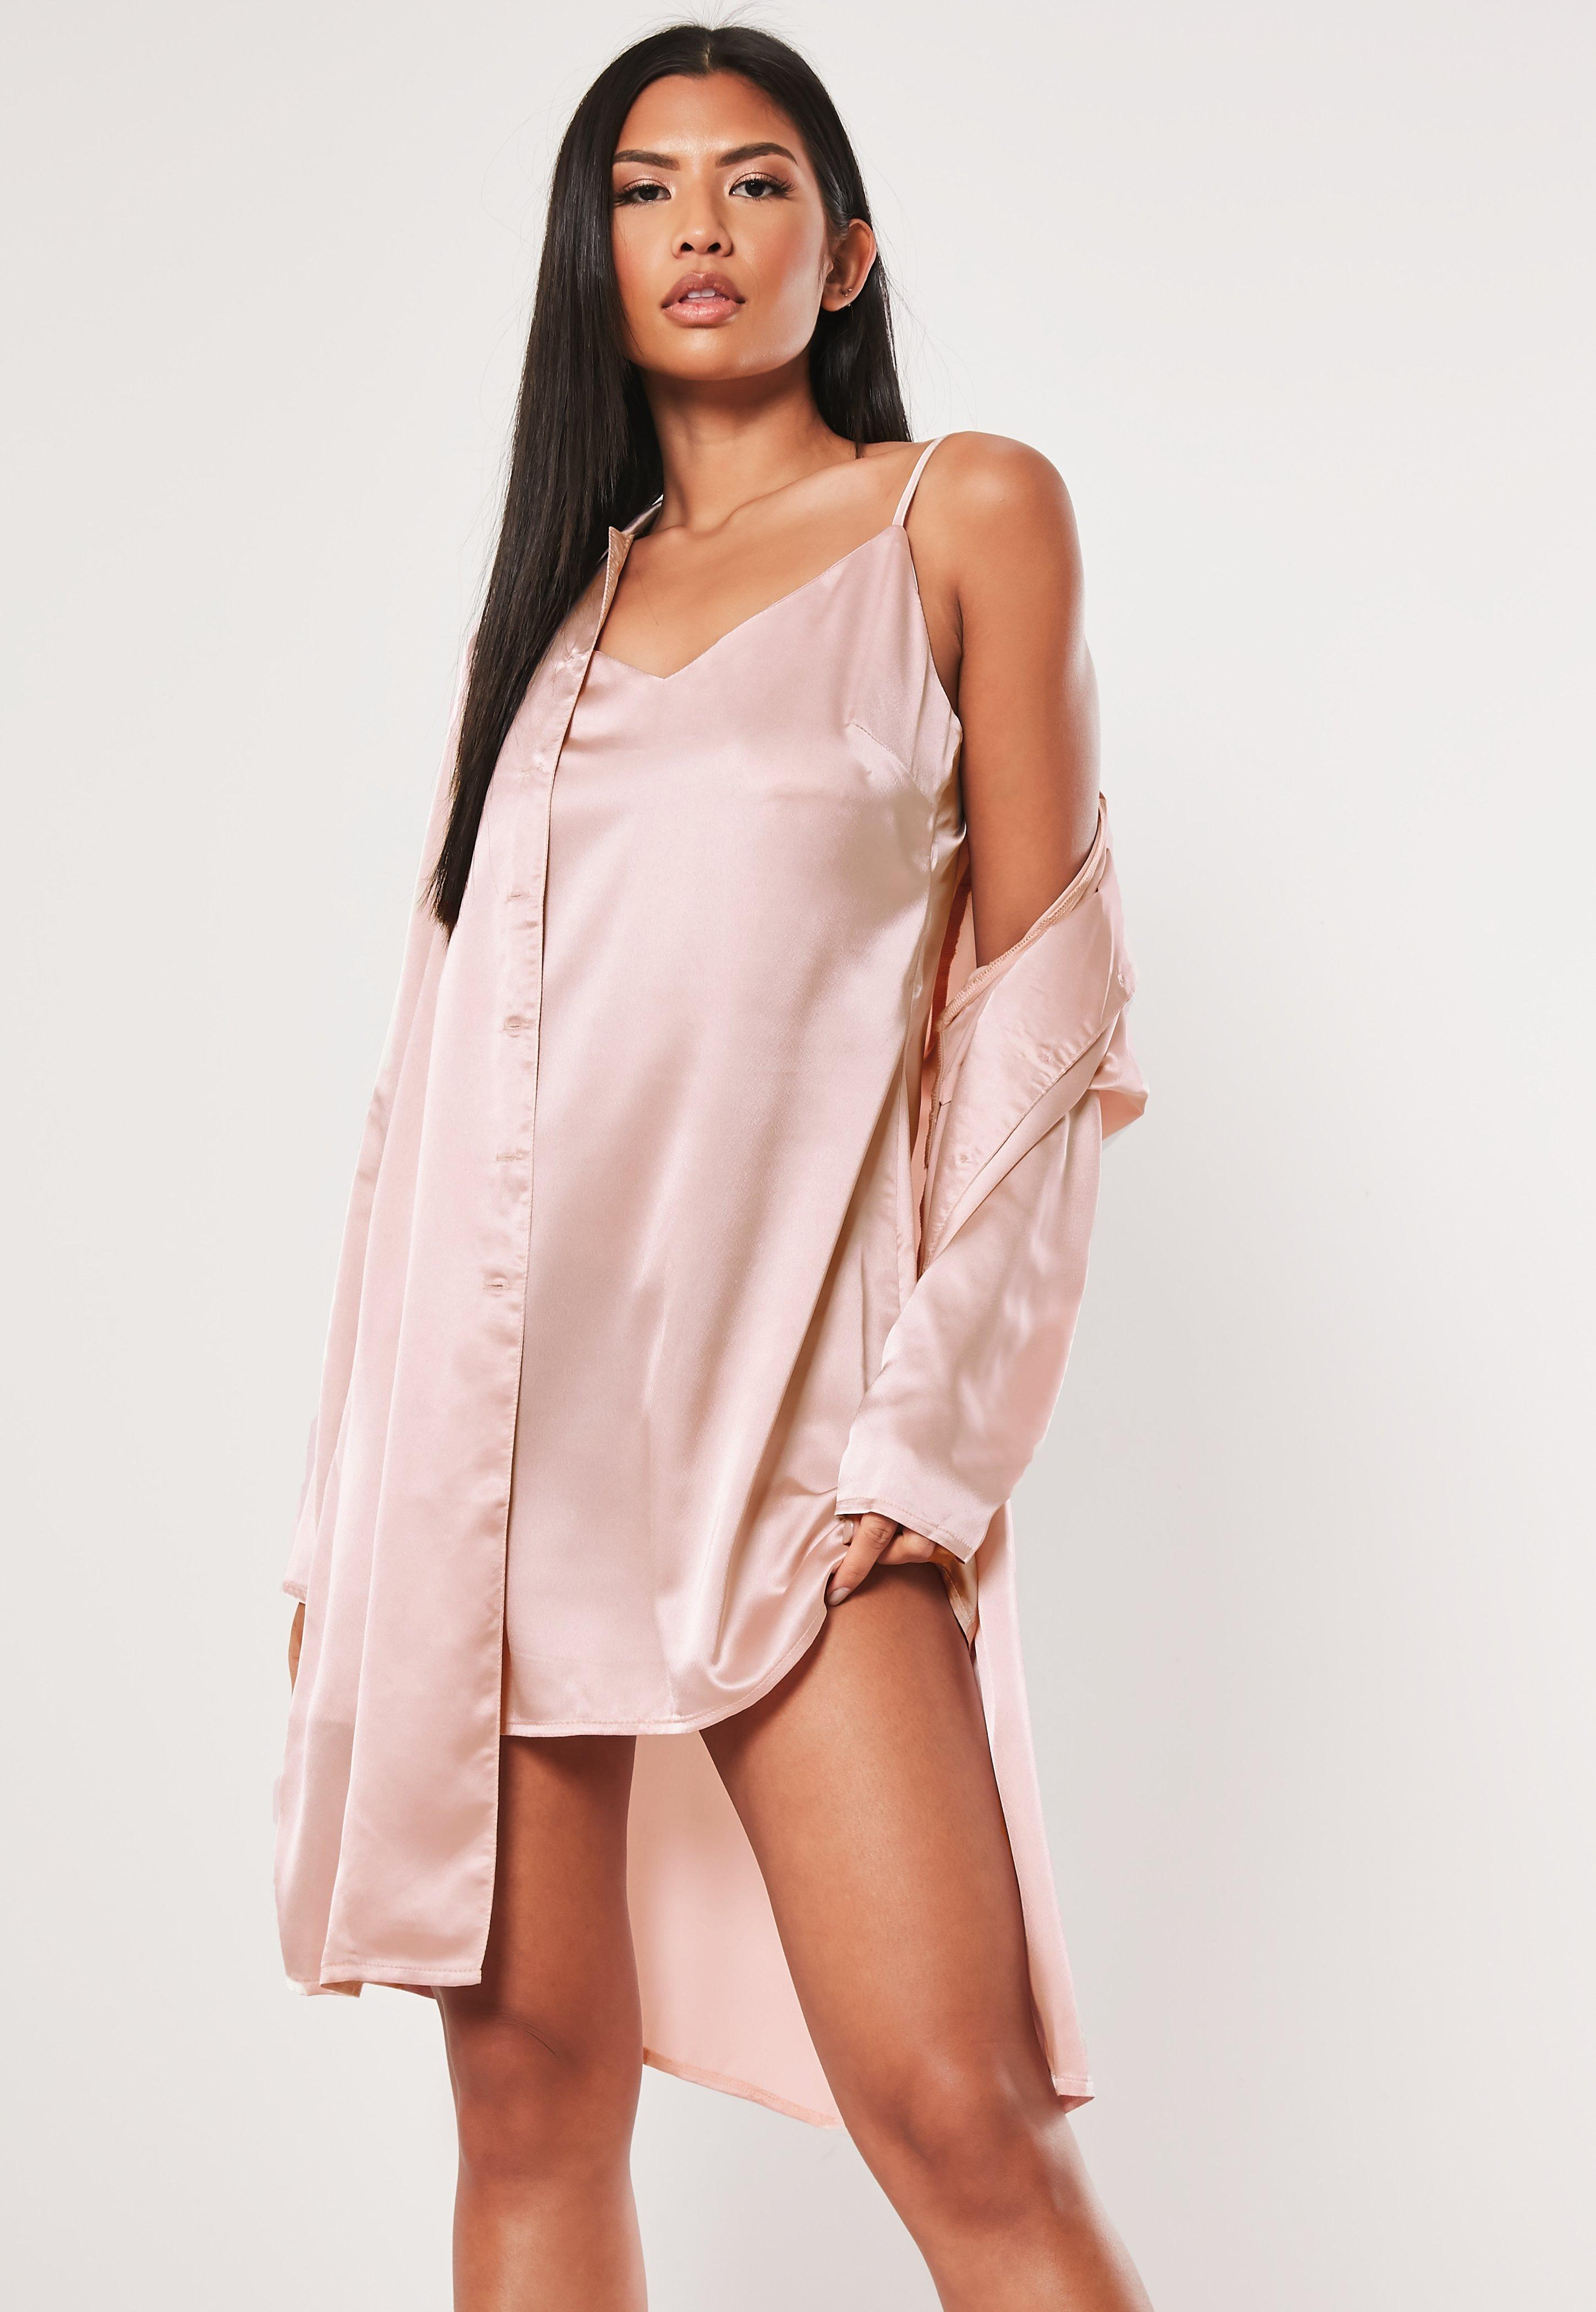 8b3aeaedee520d New In Dresses - Women s New In Clothing - Missguided